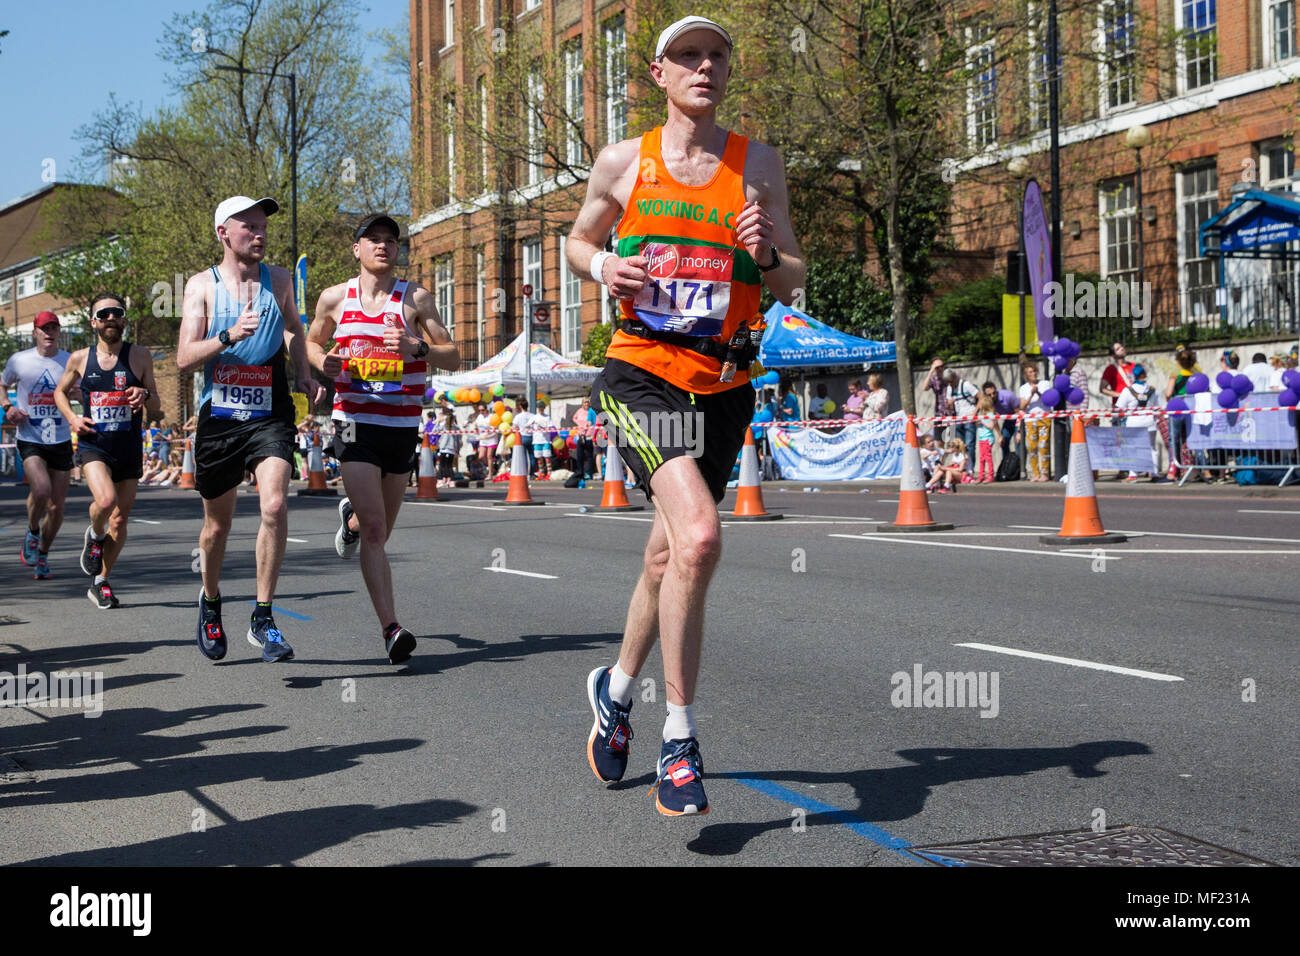 London, UK. 22nd April, 2018. Simon Egan of Woking AC competes in the 2018 Virgin Money London Marathon. The 38th edition of the race was the hottest on record with a temperature of 24.1C recorded in St James's Park. - Stock Image